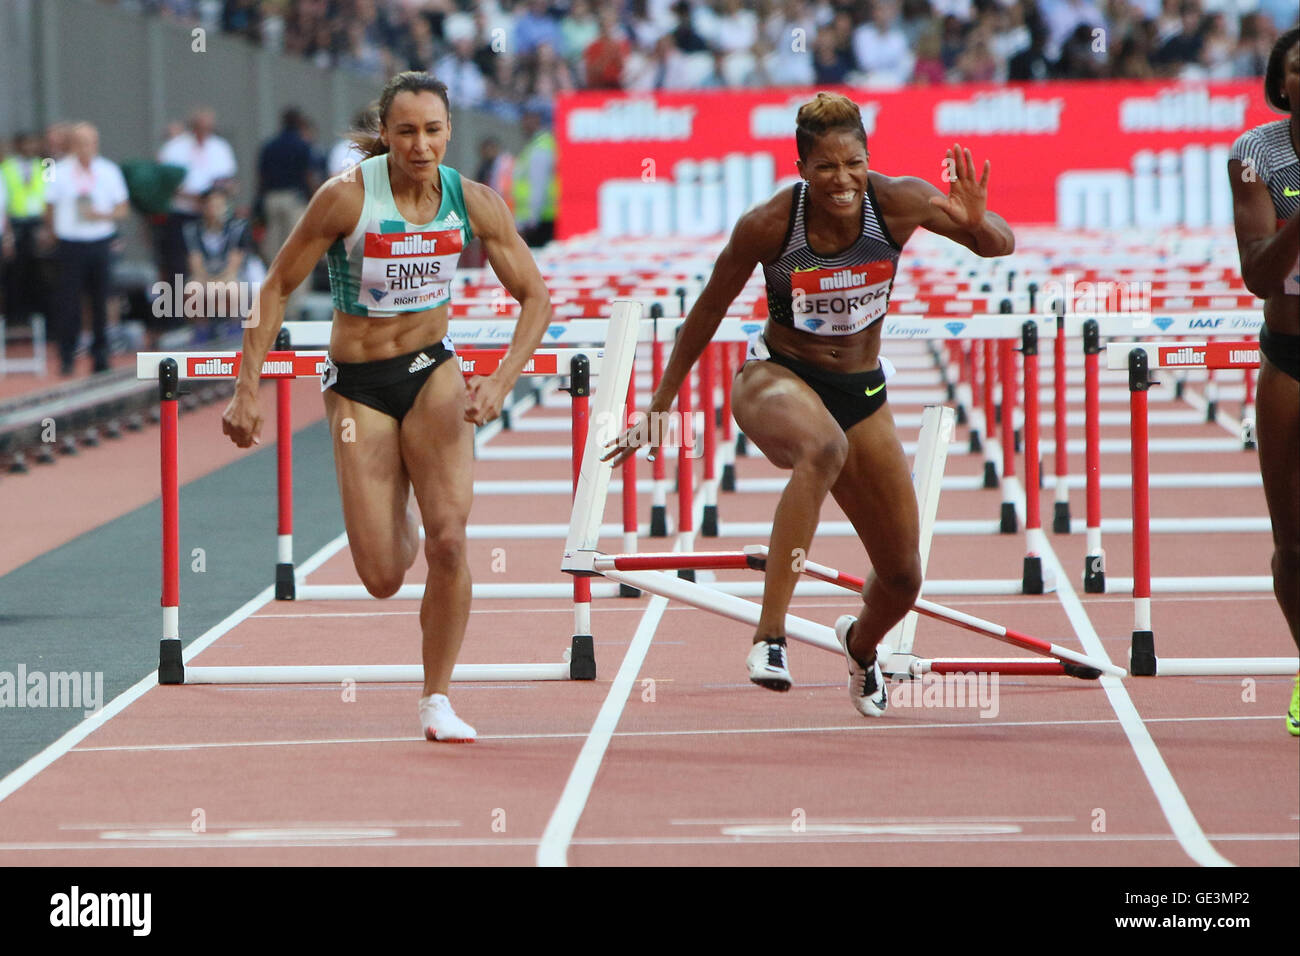 London, UK. 22nd July, 2016. IAAF Diamond League Anniversary Games. Ennis-Hill finishes third in the 100m Hurdles - Stock Image